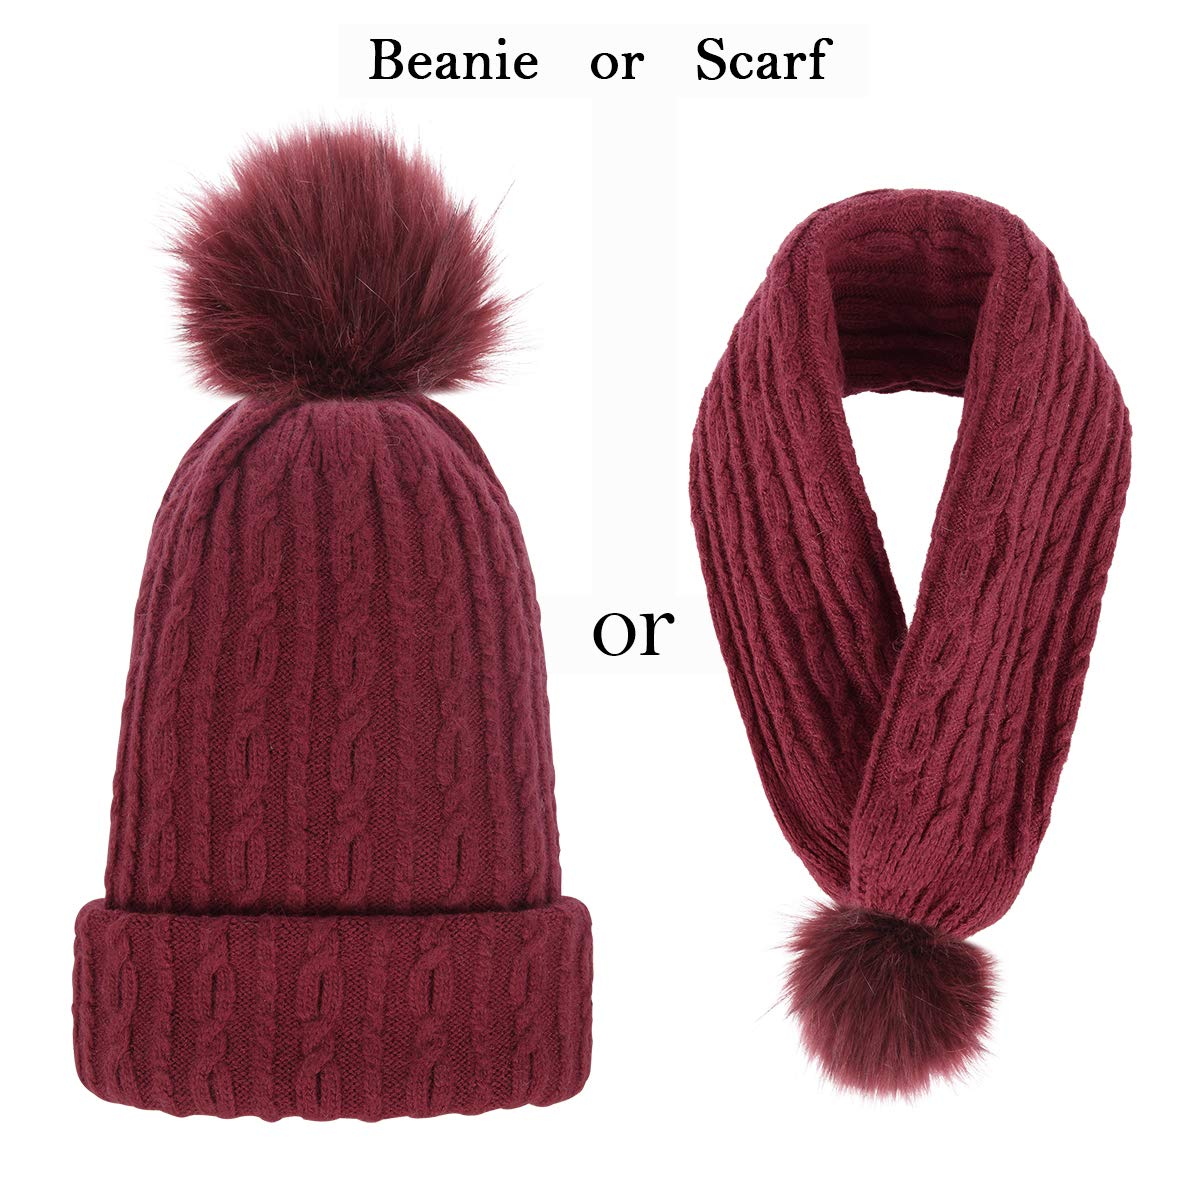 Dark Red OMECHY Women's Winter Knit Hat Trendy Slouchy Beanie with Warm Fleece Lining Skull Chunky Soft Thick Cable Ski Cap in 5 color